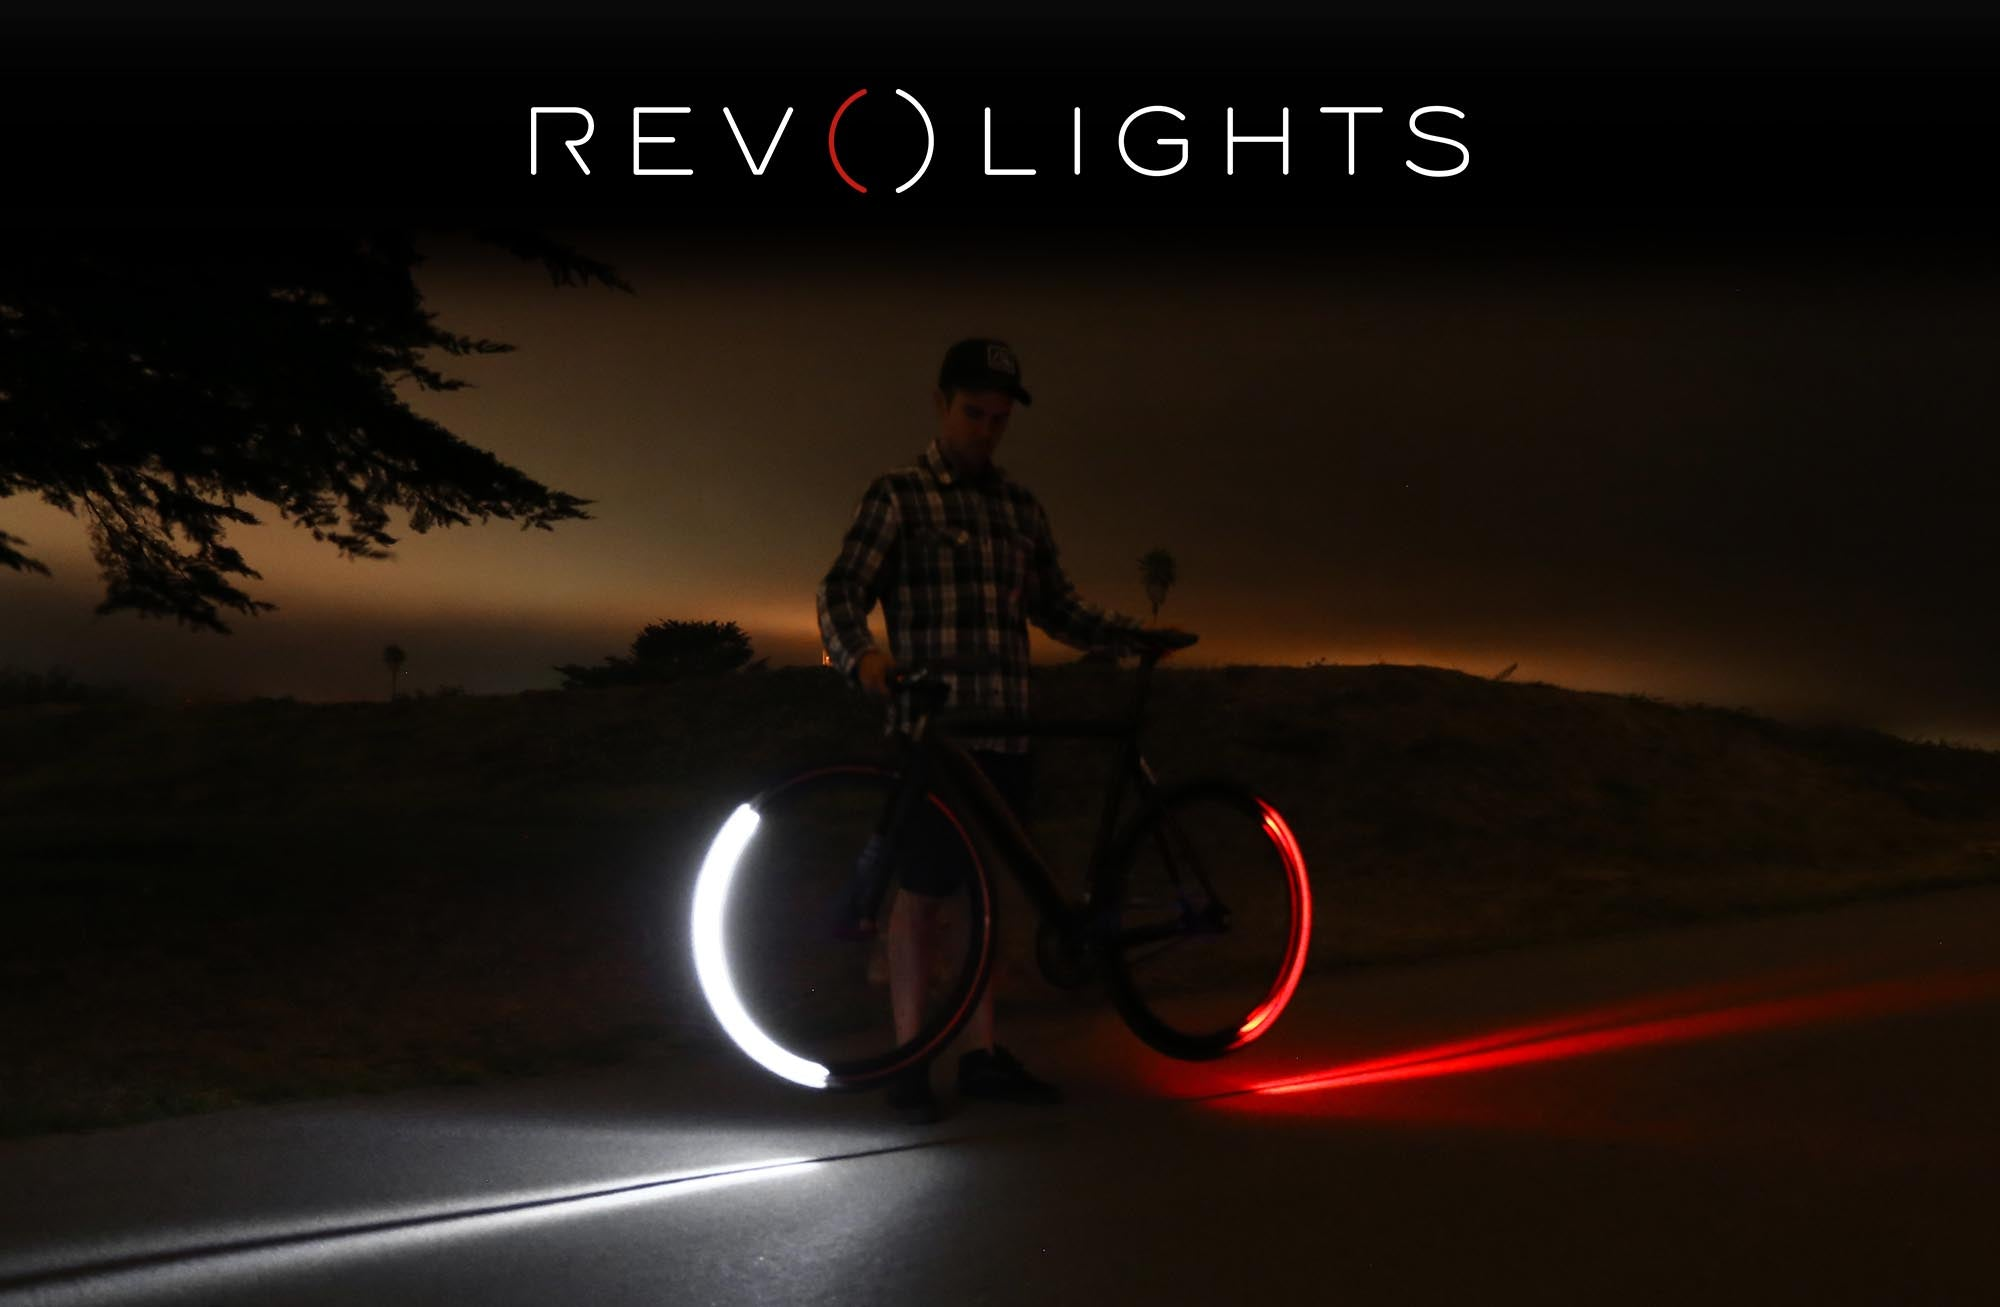 Revolights Bicycle Lighting System. The Future of Bicycle Safety. u2013 Revolights Inc. & Revolights Bicycle Lighting System. The Future of Bicycle Safety ... azcodes.com